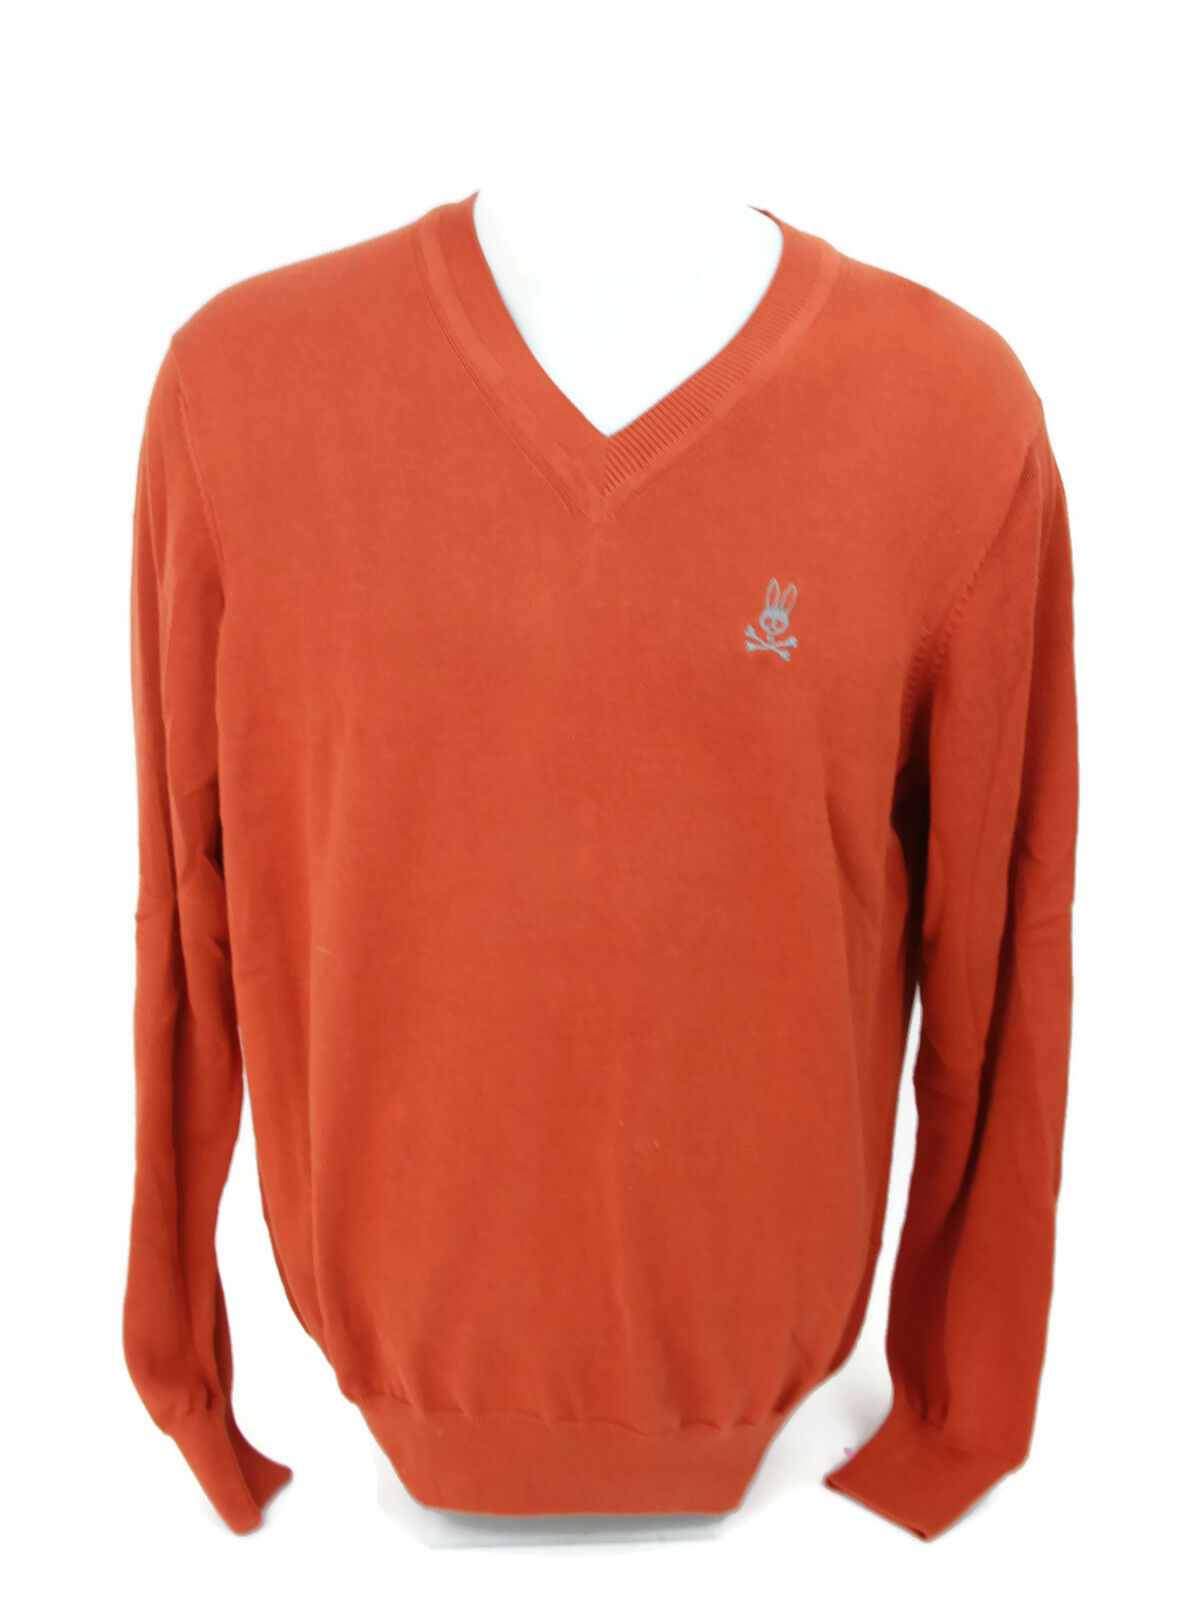 Primary image for Psycho Bunny By Robert Godley Men's Pima Cotton V-Neck Sweater Rust Orange Sz M